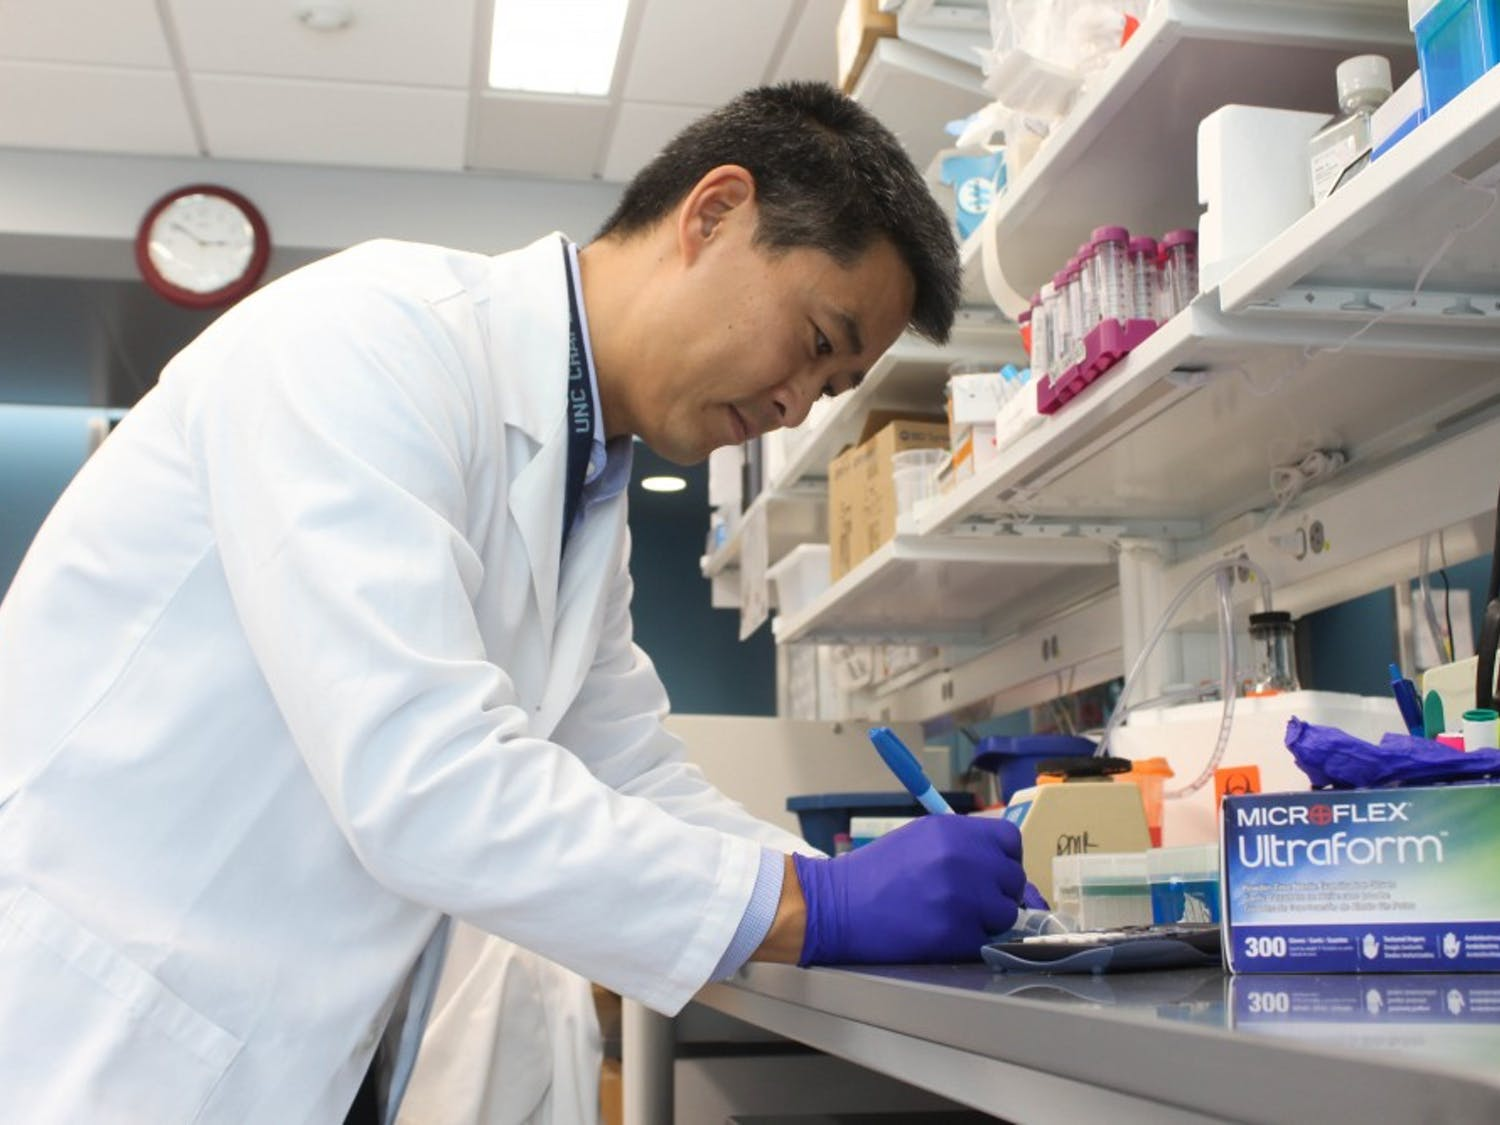 Chapel Hill resident, Dr. Edwin Kim, 55, working in the lab for the UNC Food Allergy Initiative at the Mary Ellen Jones building on Friday, Oct. 4, 2019. Kim and the UNC Food Allergy Initiative are developing peanut allergy treatments to make those with allergies less reactive to allergens. Kim's daughter and son both have nut allergies.